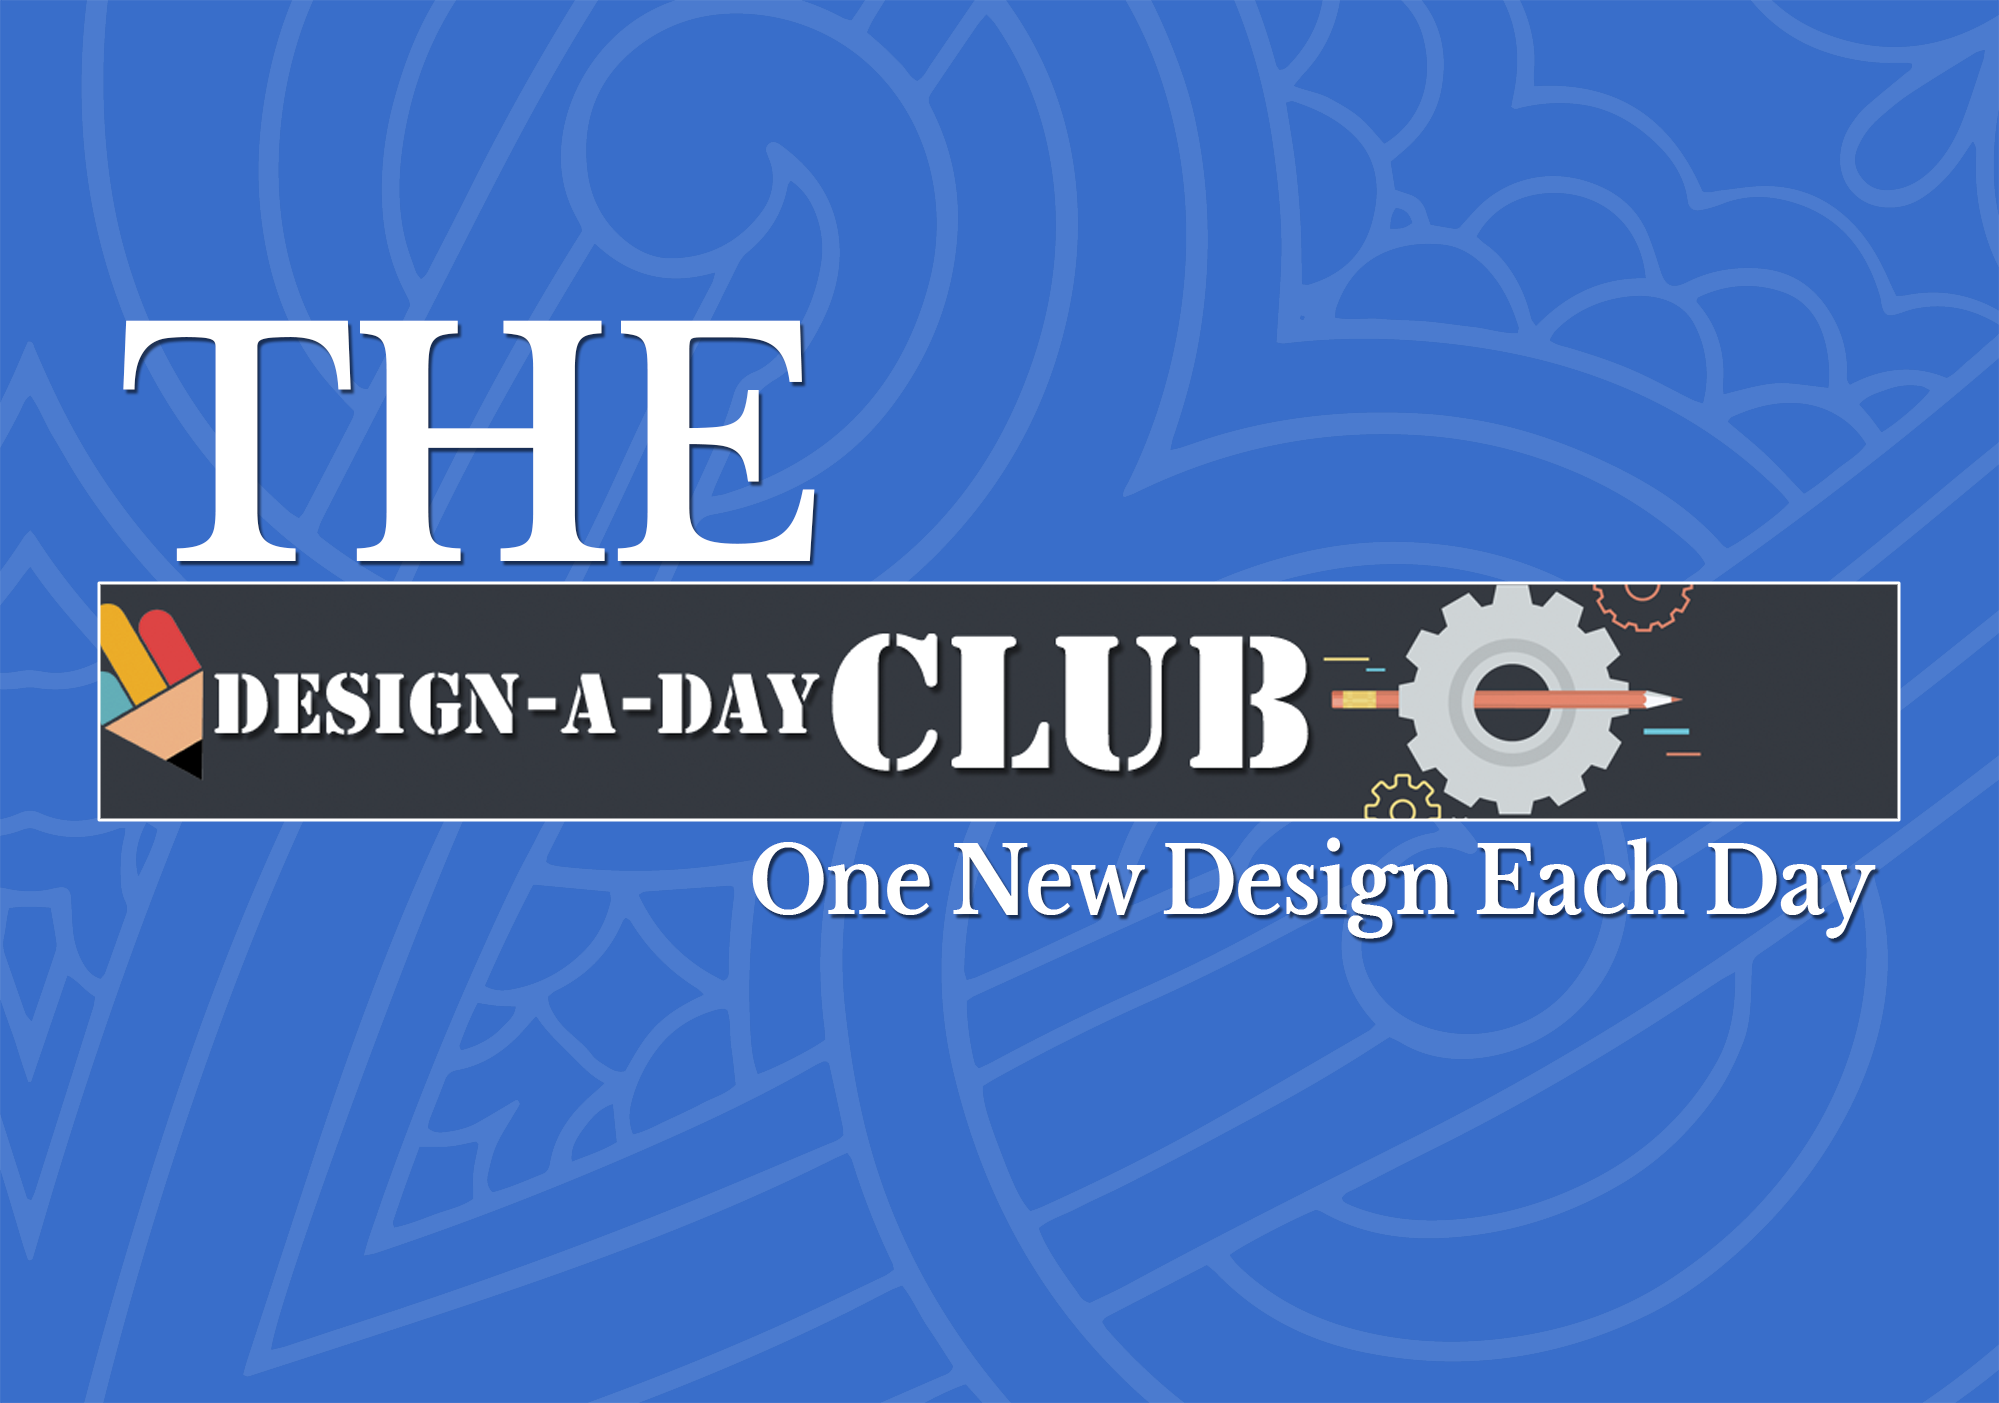 Design-a-Day Club Presented by Shawn Hansen